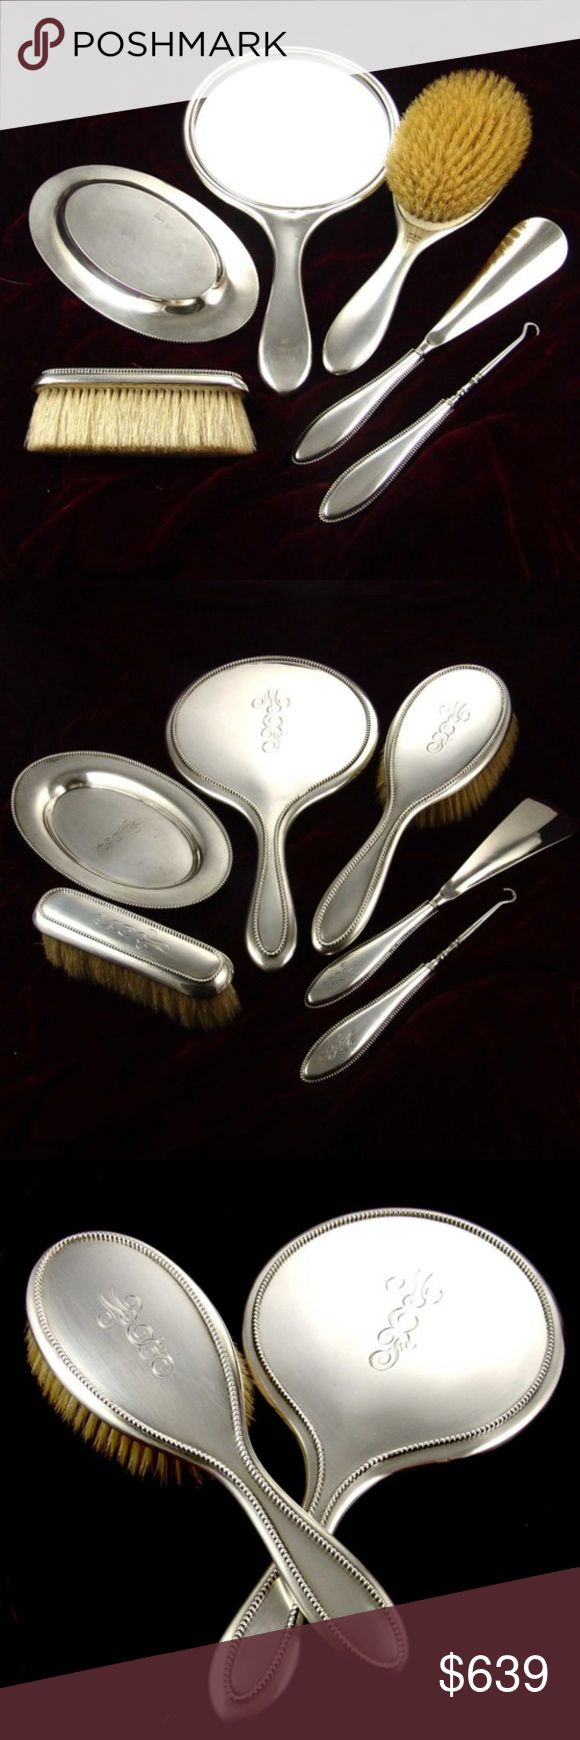 """1890's Victorian R. Wallace & Sons 925 Vanity set ANTIQUE VICTORIAN 1890's  R. WALLACE & Sons 6 pc VANITY BRUSH SET in solid STERLING (92.5)  (128 years old) In beautiful antique condition, used, w/slight  minor scuffs, set has old fancy MONOGRAM (mef) on back , adds to the beauty of the antique set.  Mirror - Size: Mirror - 6"""" x 11"""" Hair Brush - 3"""" x 9 1/2"""" Clothes Brush - 1 1/2"""" x 5"""" Manicure Tray - 4"""" x 7"""" Shoe Horn - 1 1/2"""" x 9"""" Button Hook - 1"""" x 7"""". Total weight 794.5 grams . I DO NOT…"""